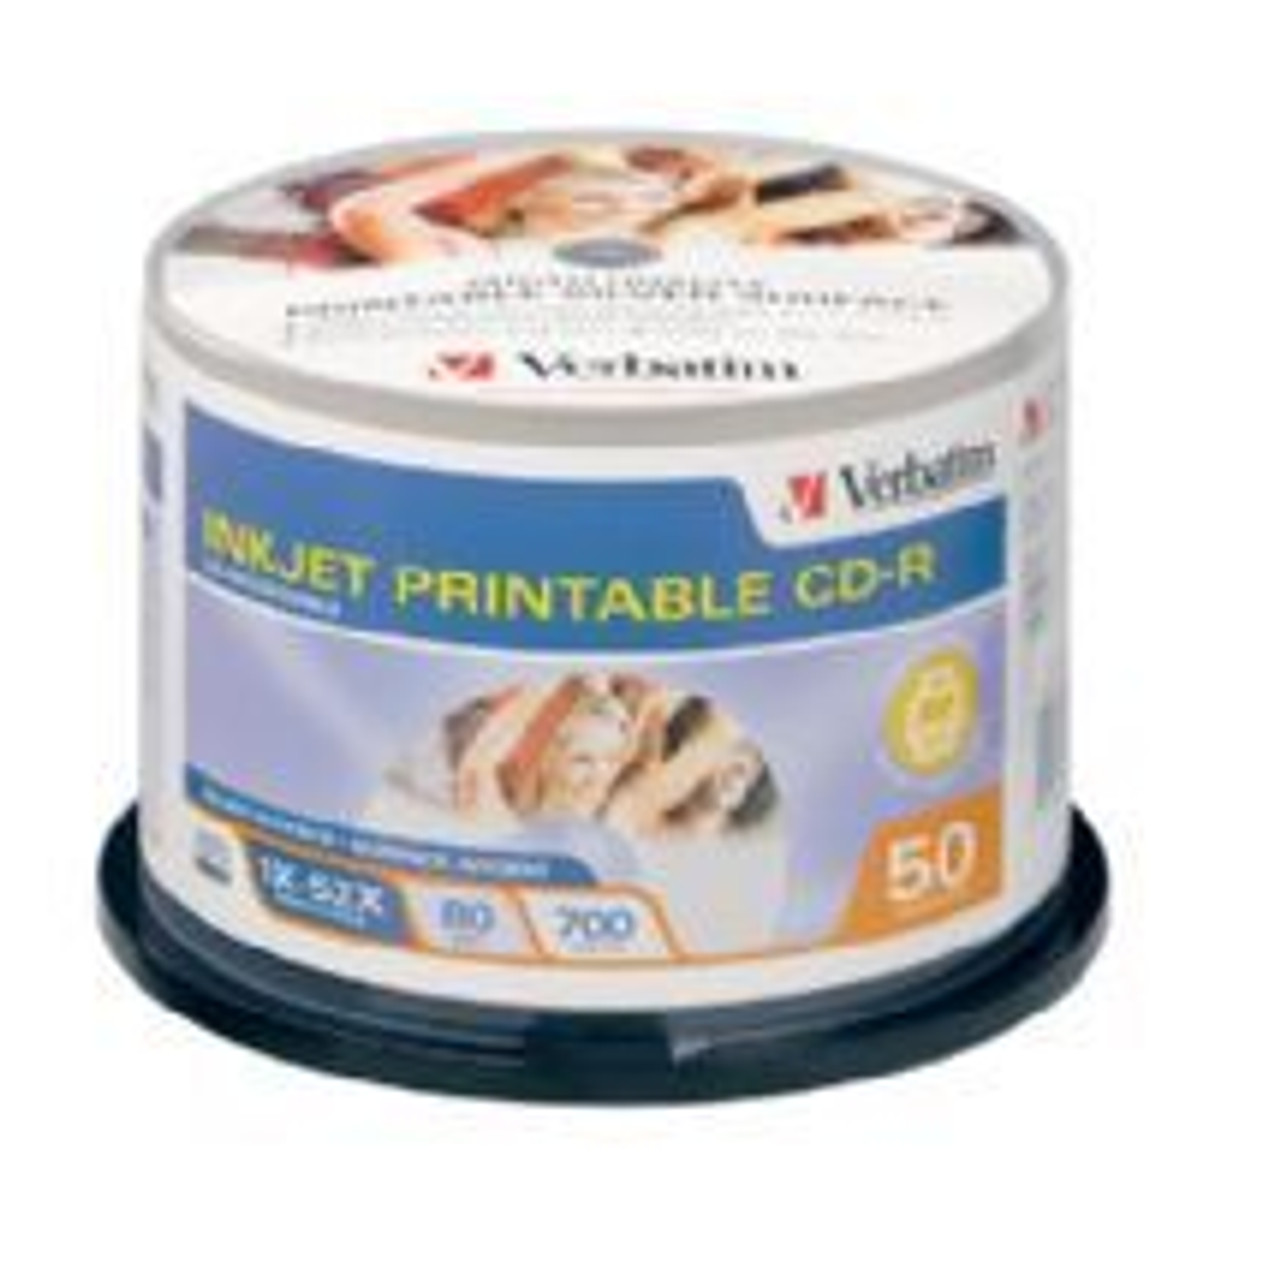 Image for Verbatim CD-R 80 Min Silver IJ Printable 50 Pack 52x CX Computer Superstore